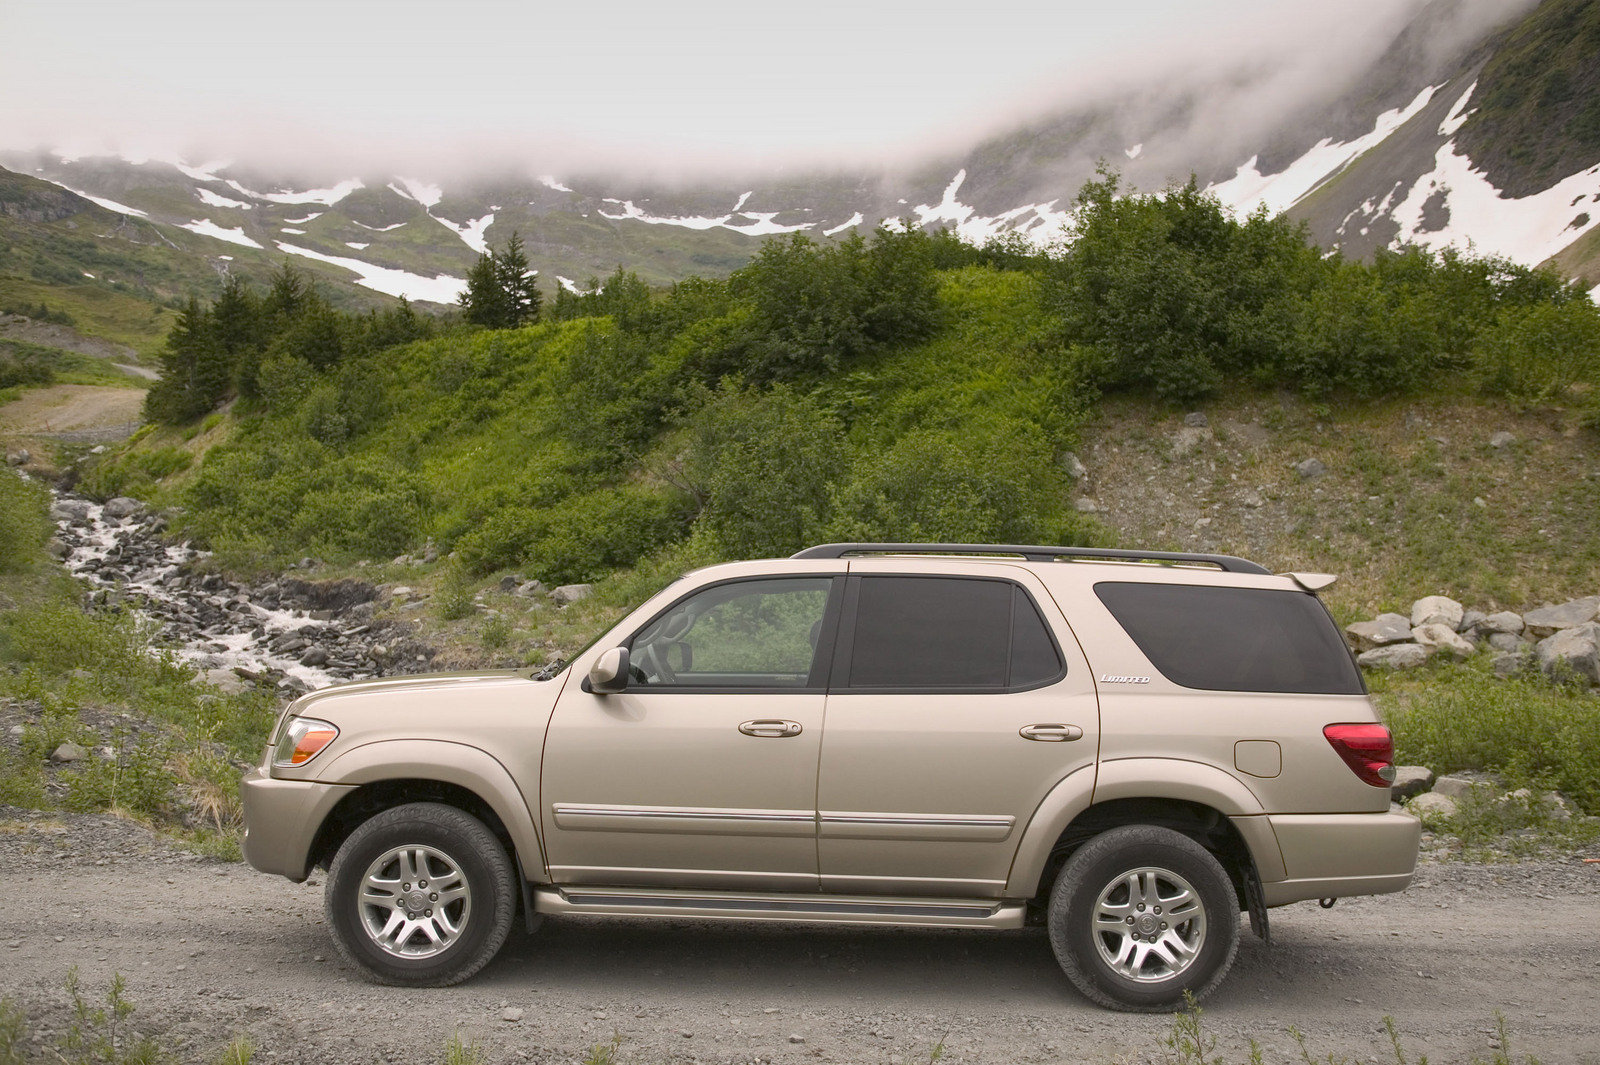 2006 toyota sequoia picture 93058 car review top speed. Black Bedroom Furniture Sets. Home Design Ideas